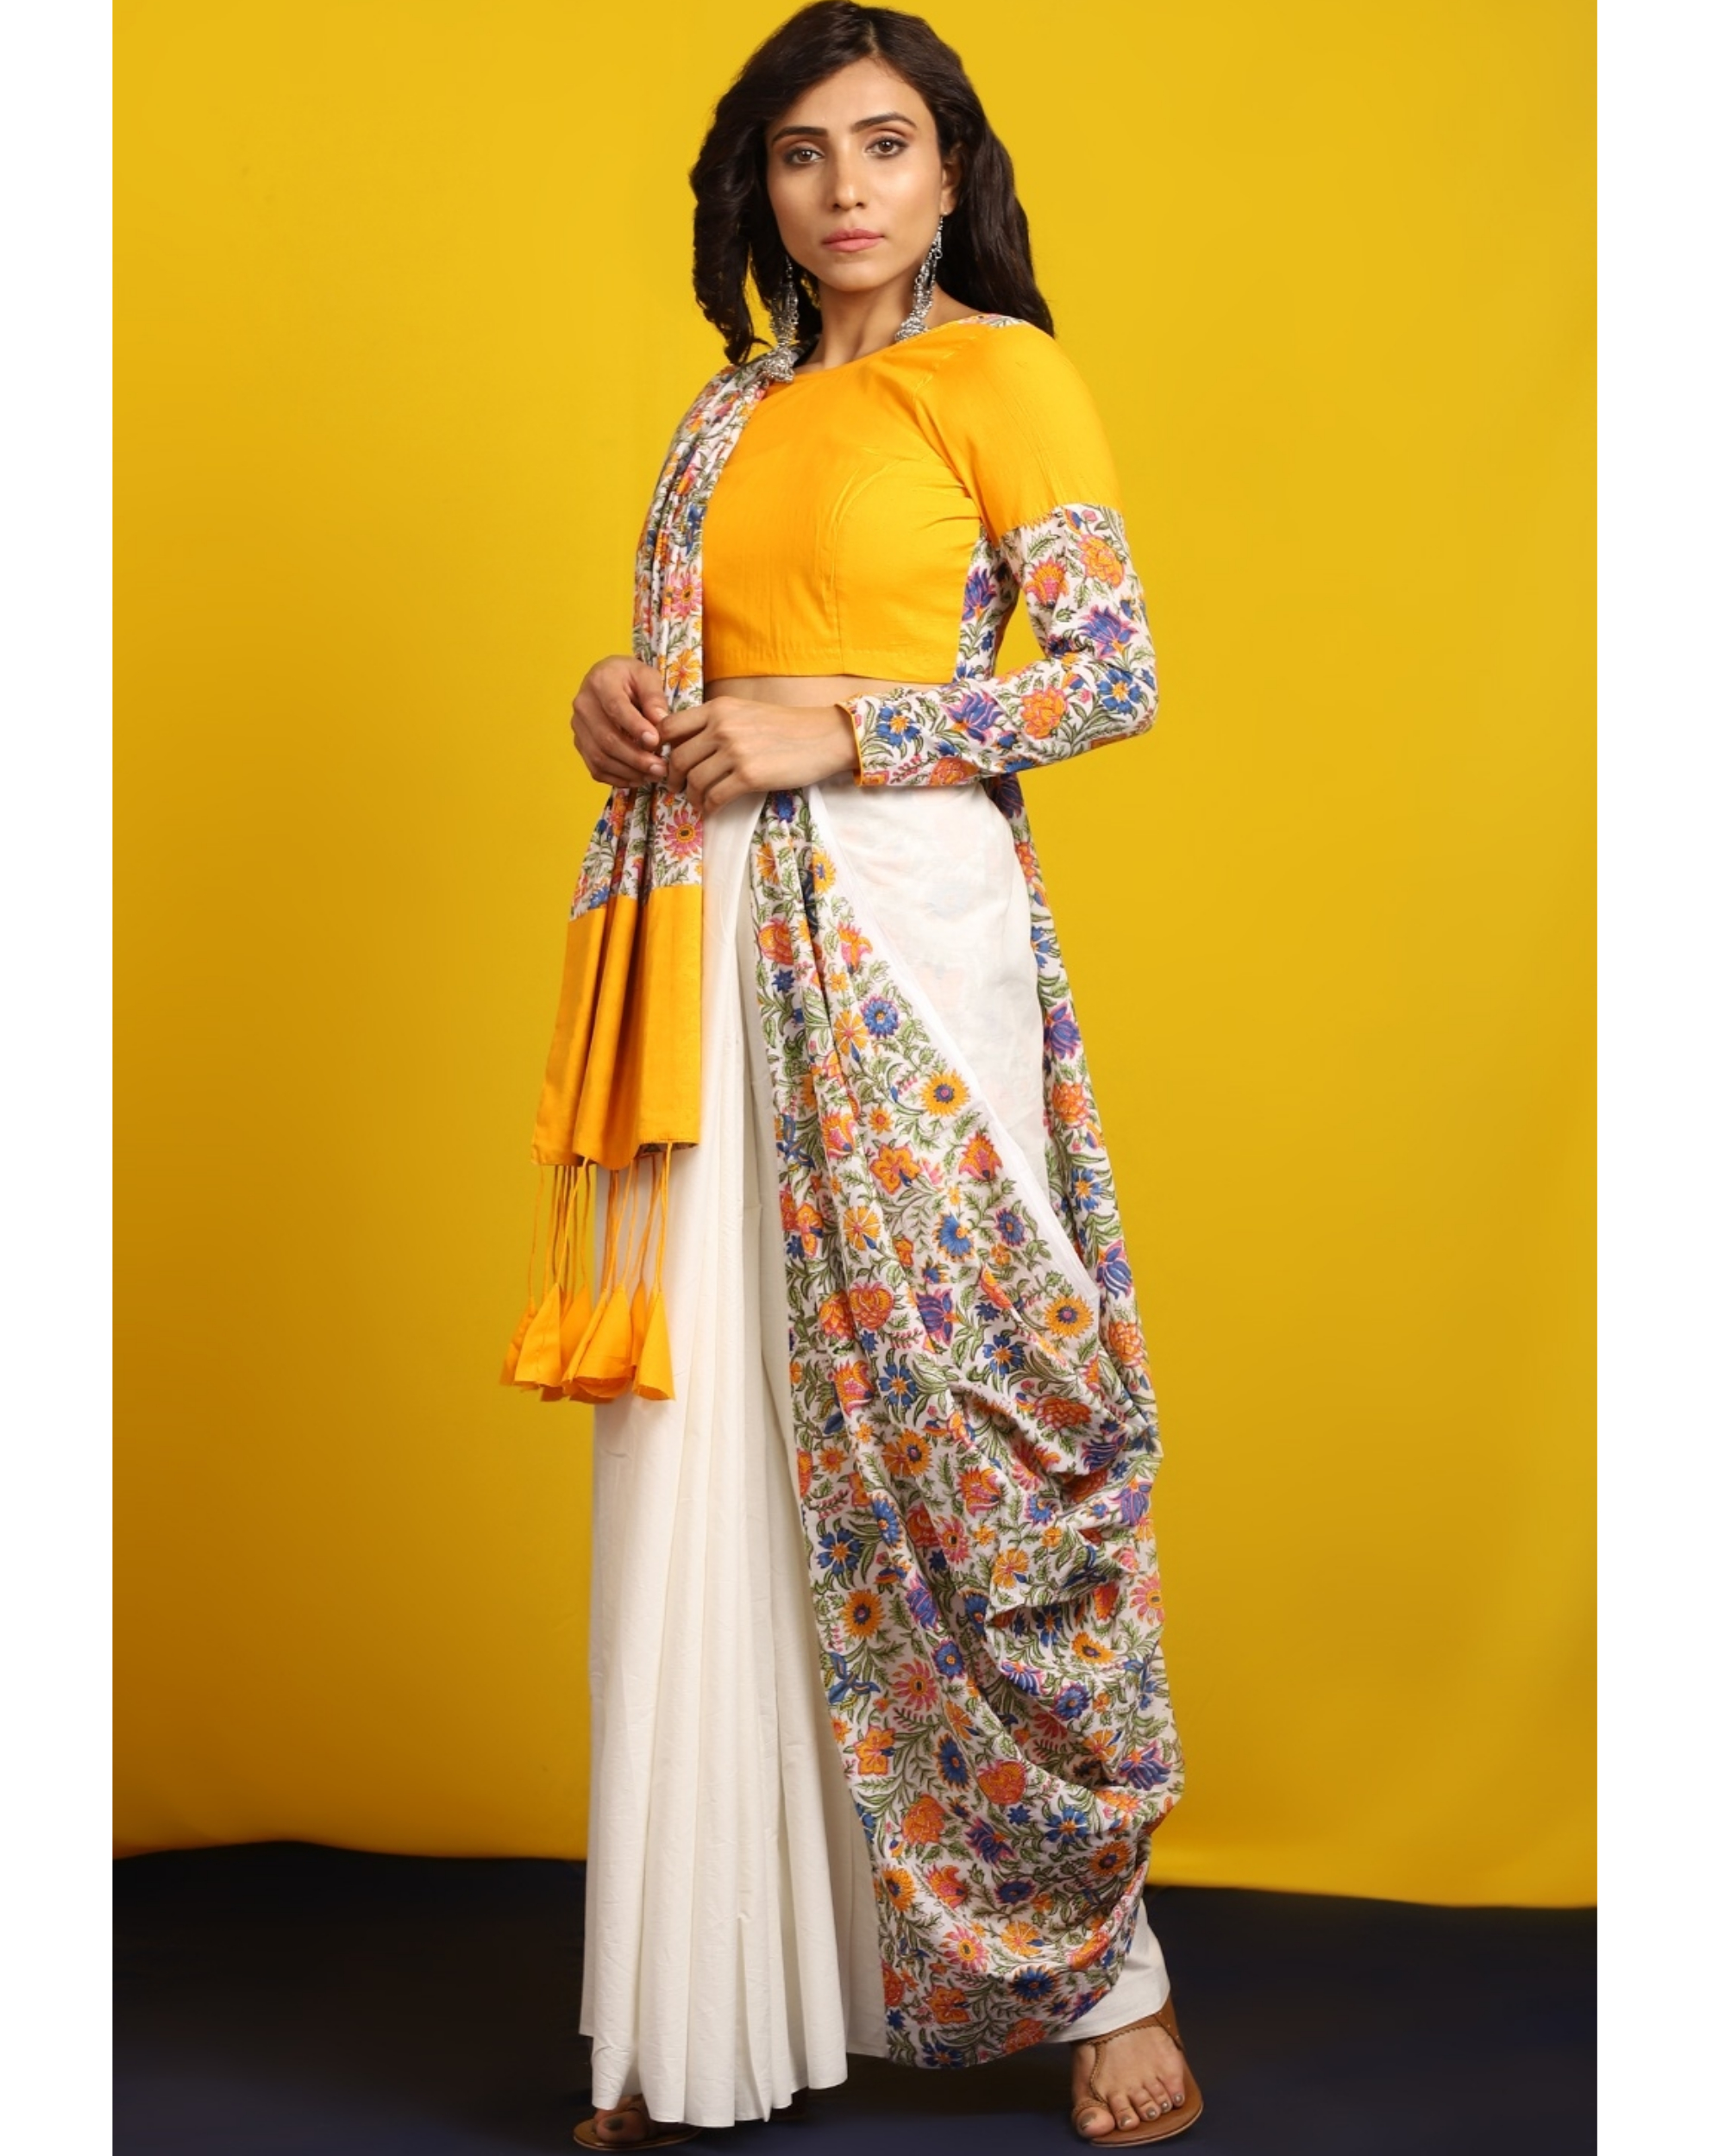 Ivory and floral half and half sari